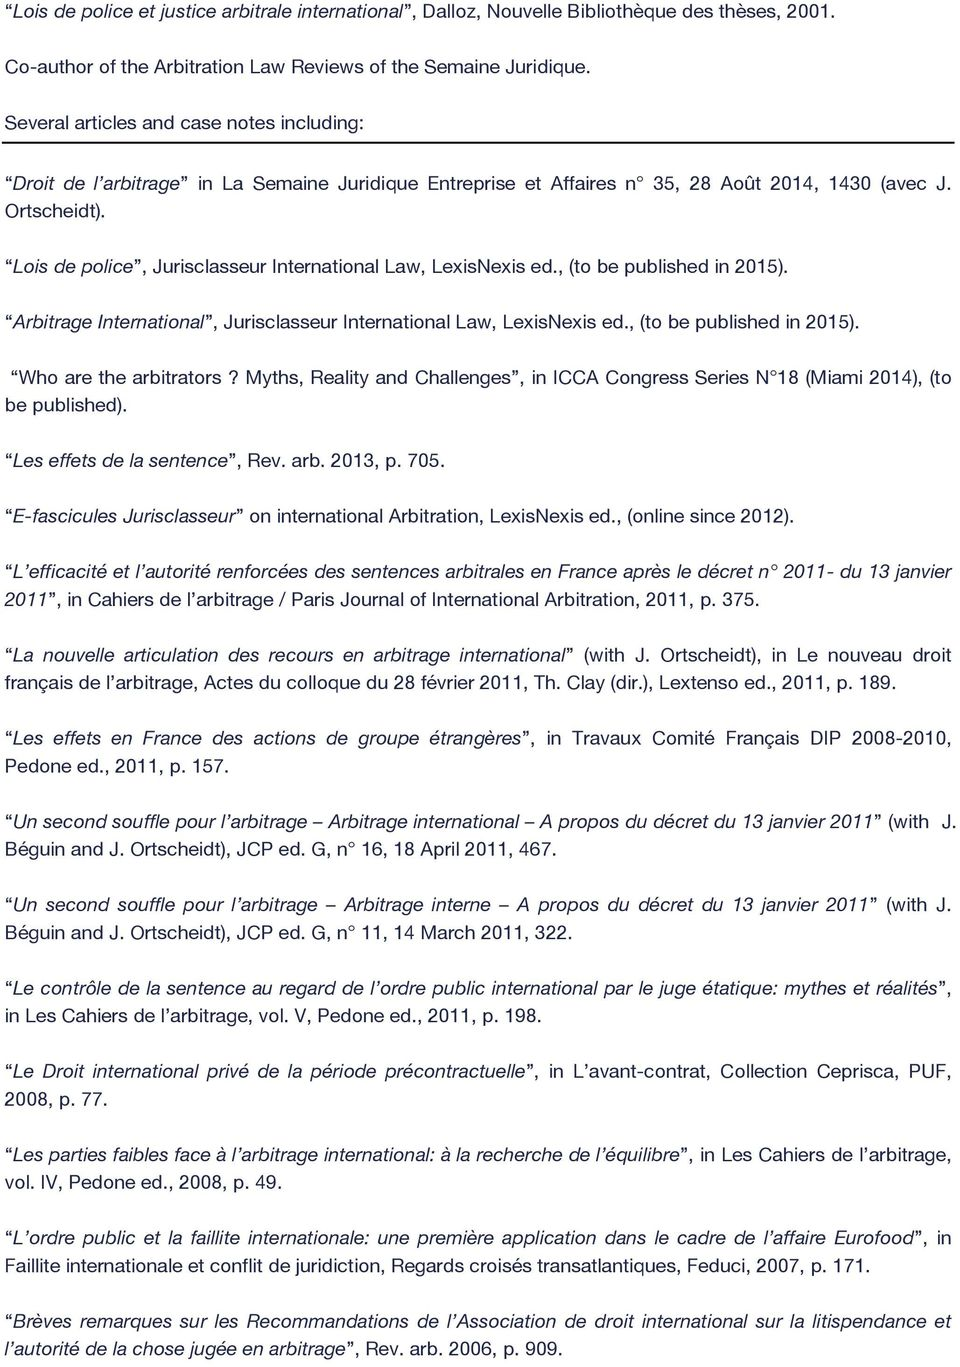 Lois de police, Jurisclasseur International Law, LexisNexis ed., (to be published in 2015). Arbitrage International, Jurisclasseur International Law, LexisNexis ed., (to be published in 2015). Who are the arbitrators?